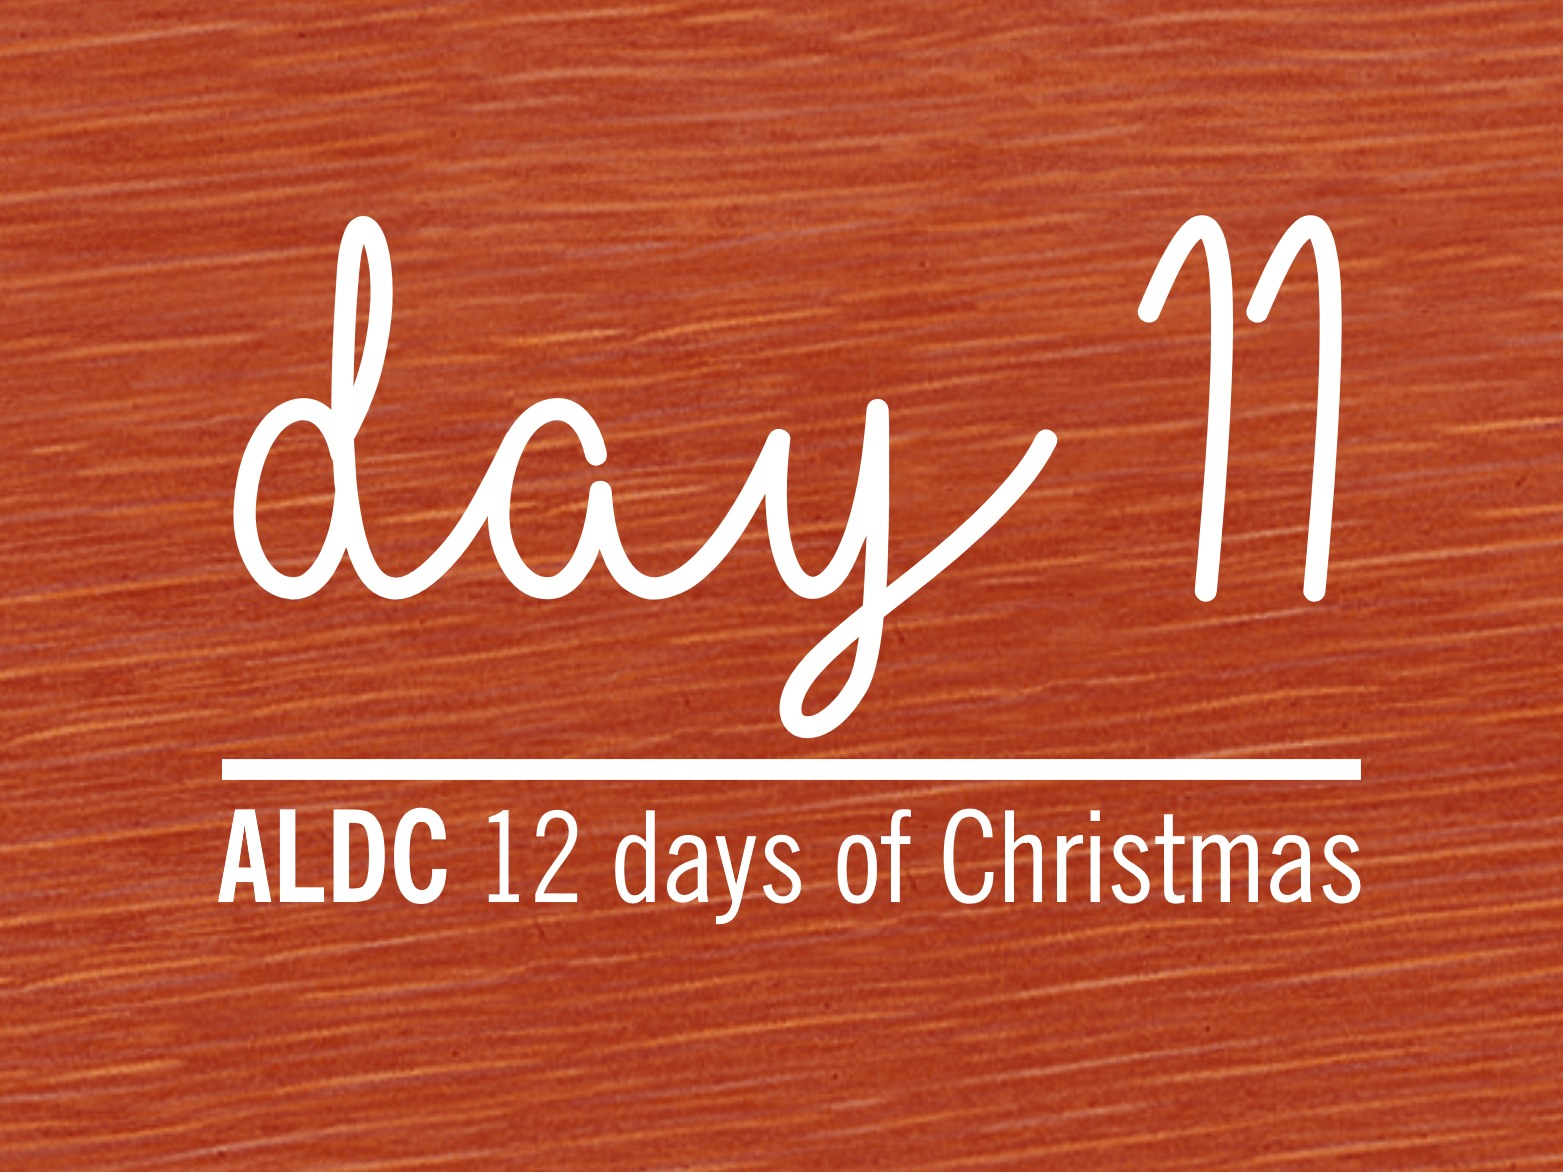 On the eleventh day of Christmas, ALDC gave to me…